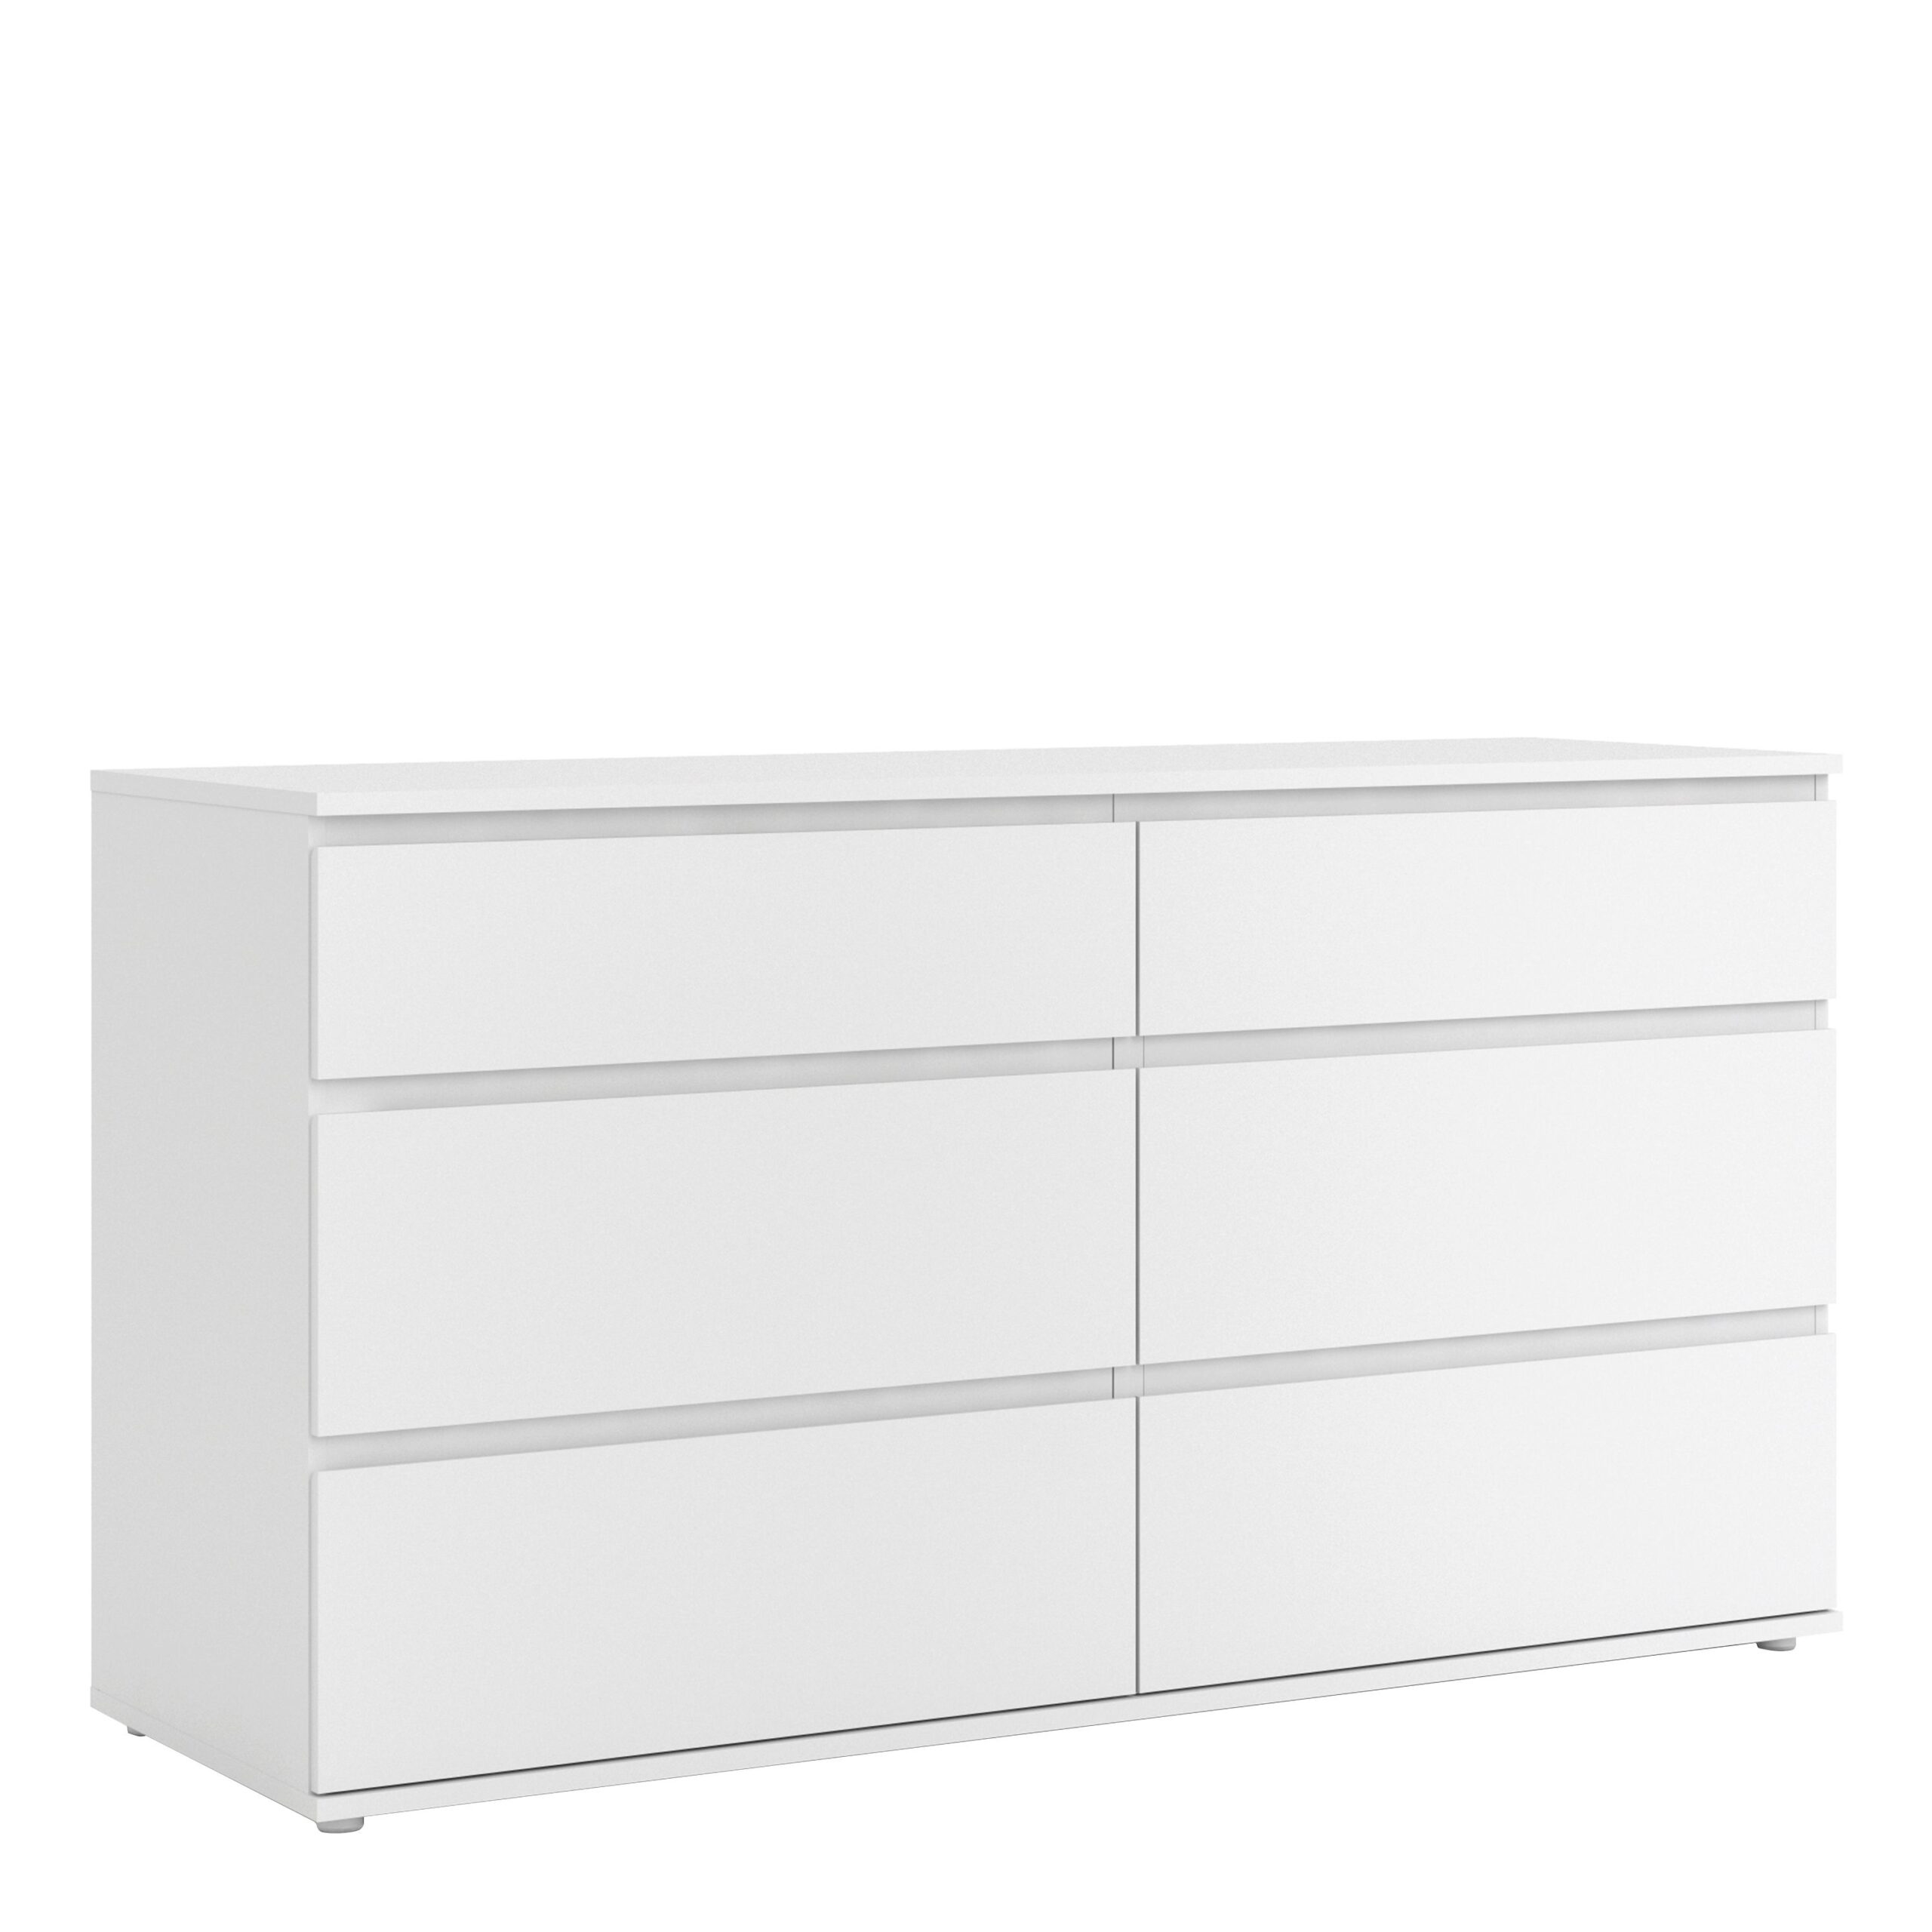 Soyo Wide Chest of 6 Drawers (3+3) in White